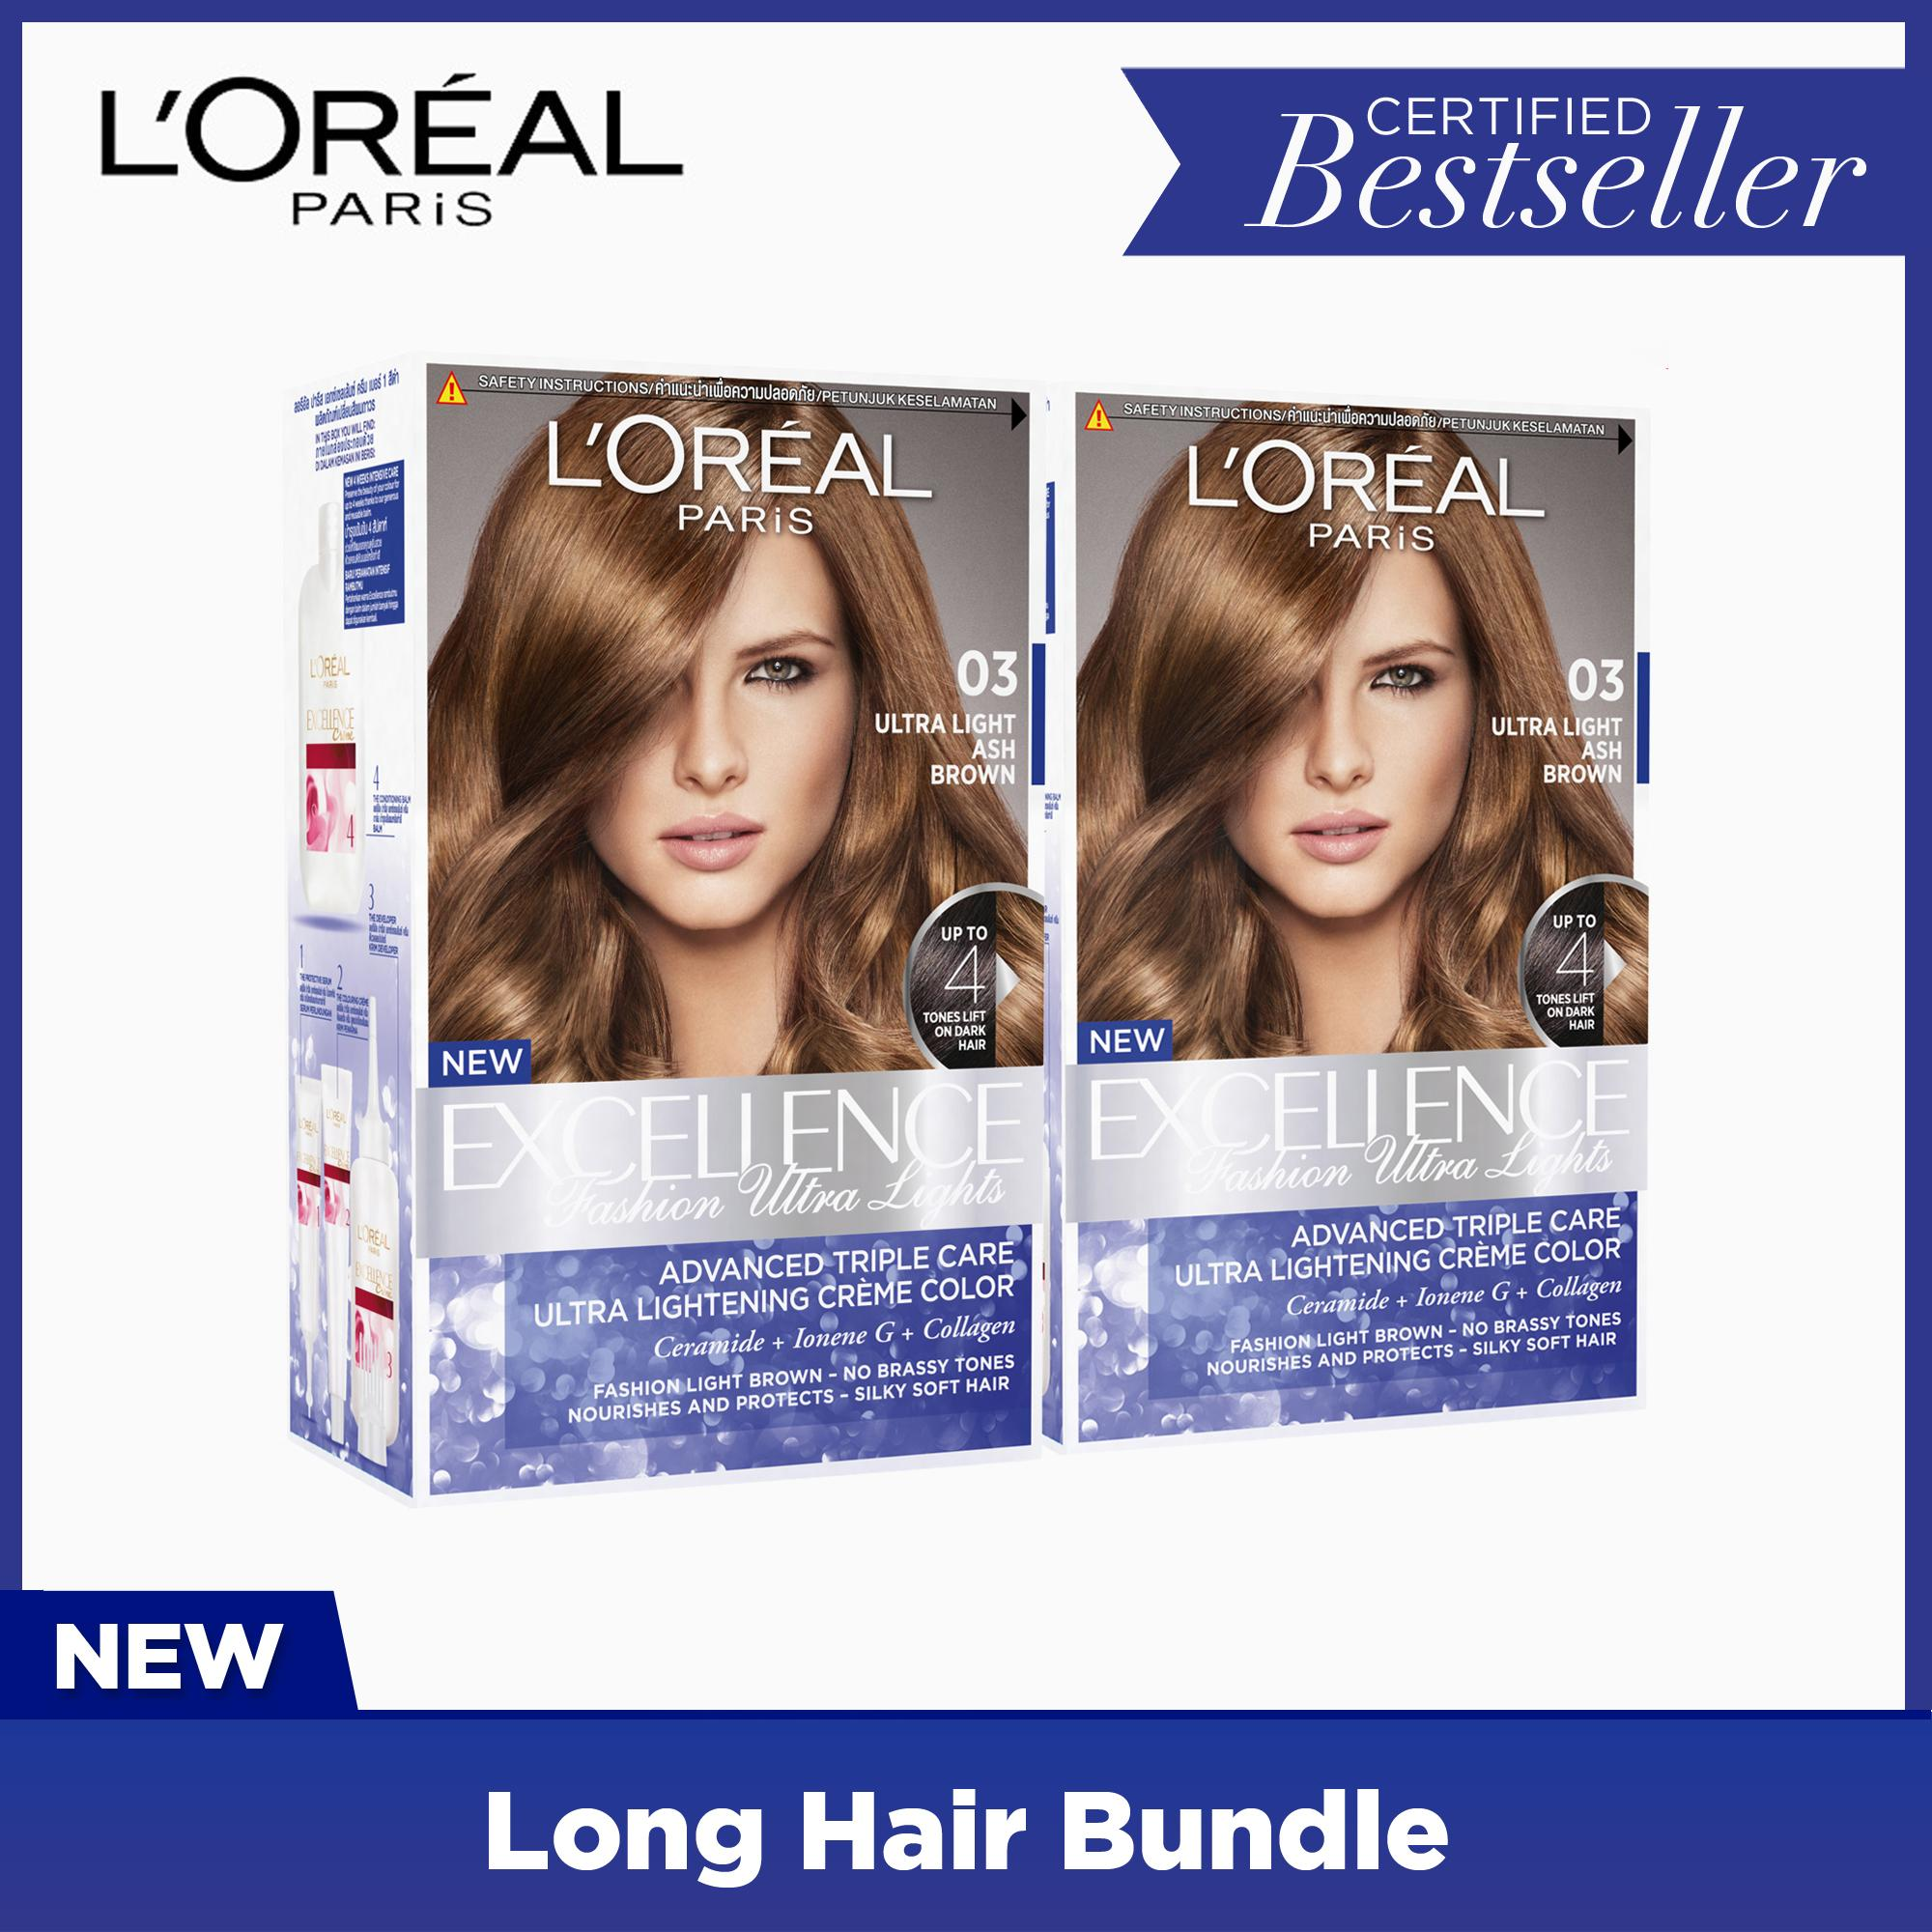 Hair Color Brands Hair Dye On Sale Prices Set Reviews In